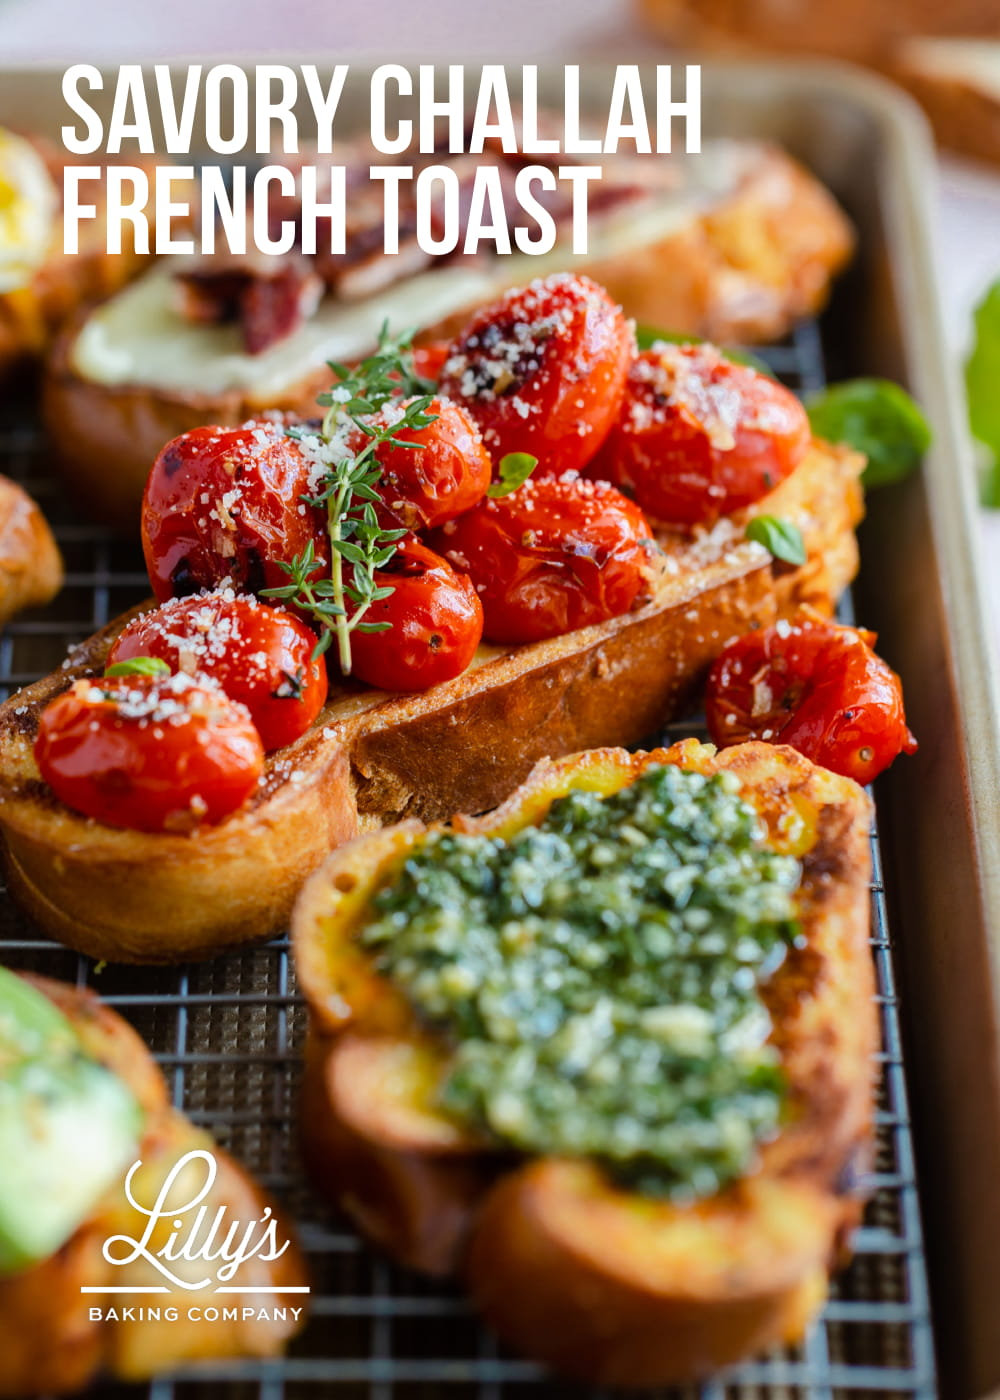 Savory Challah French Toast